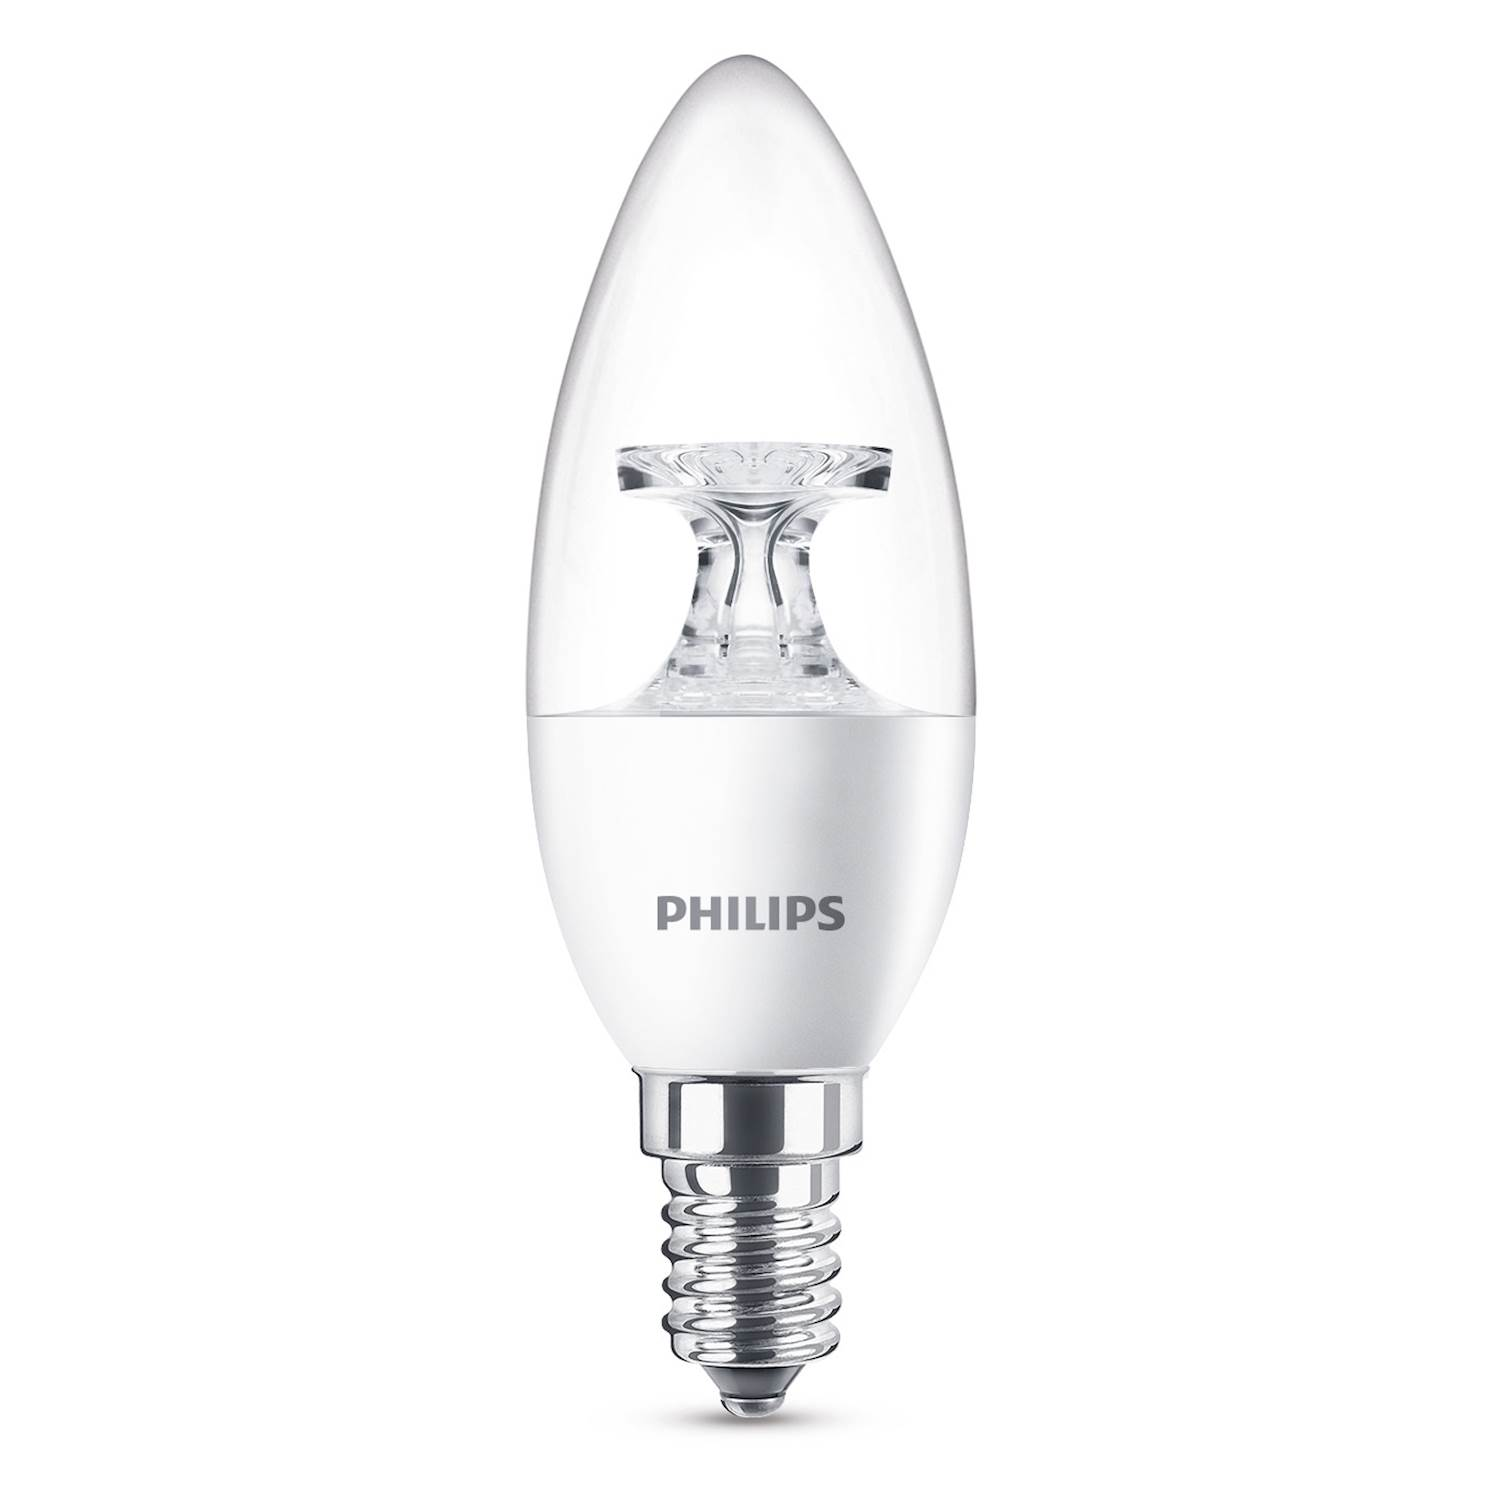 Philips LED KRON 5,5W E14 VV KL ND